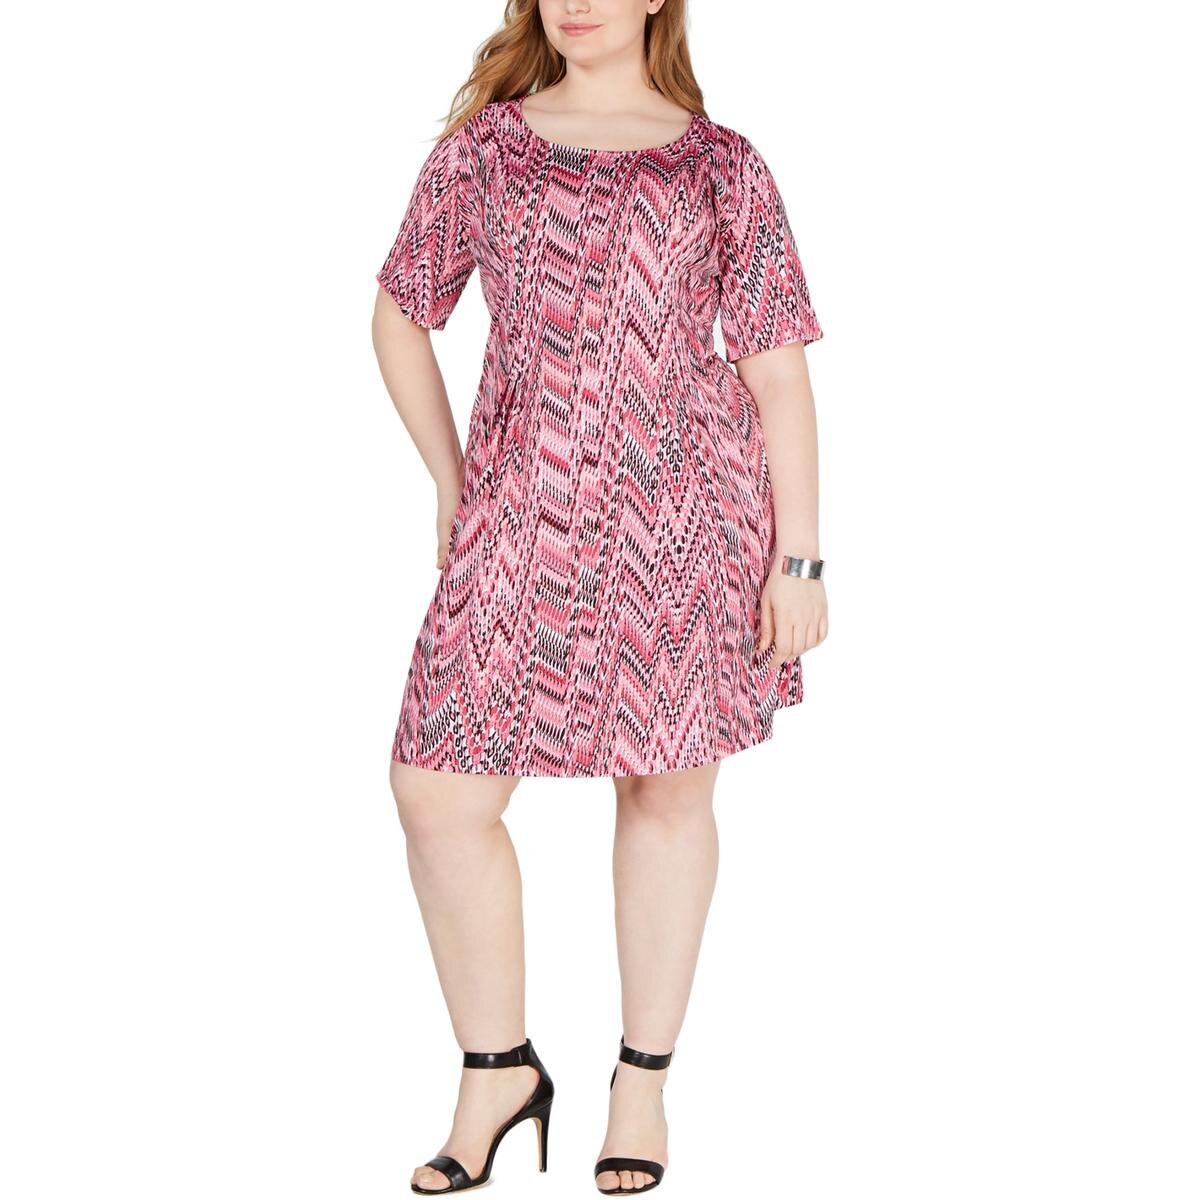 NY Collection Womens Plus Petite Snake Print Cocktail Dress